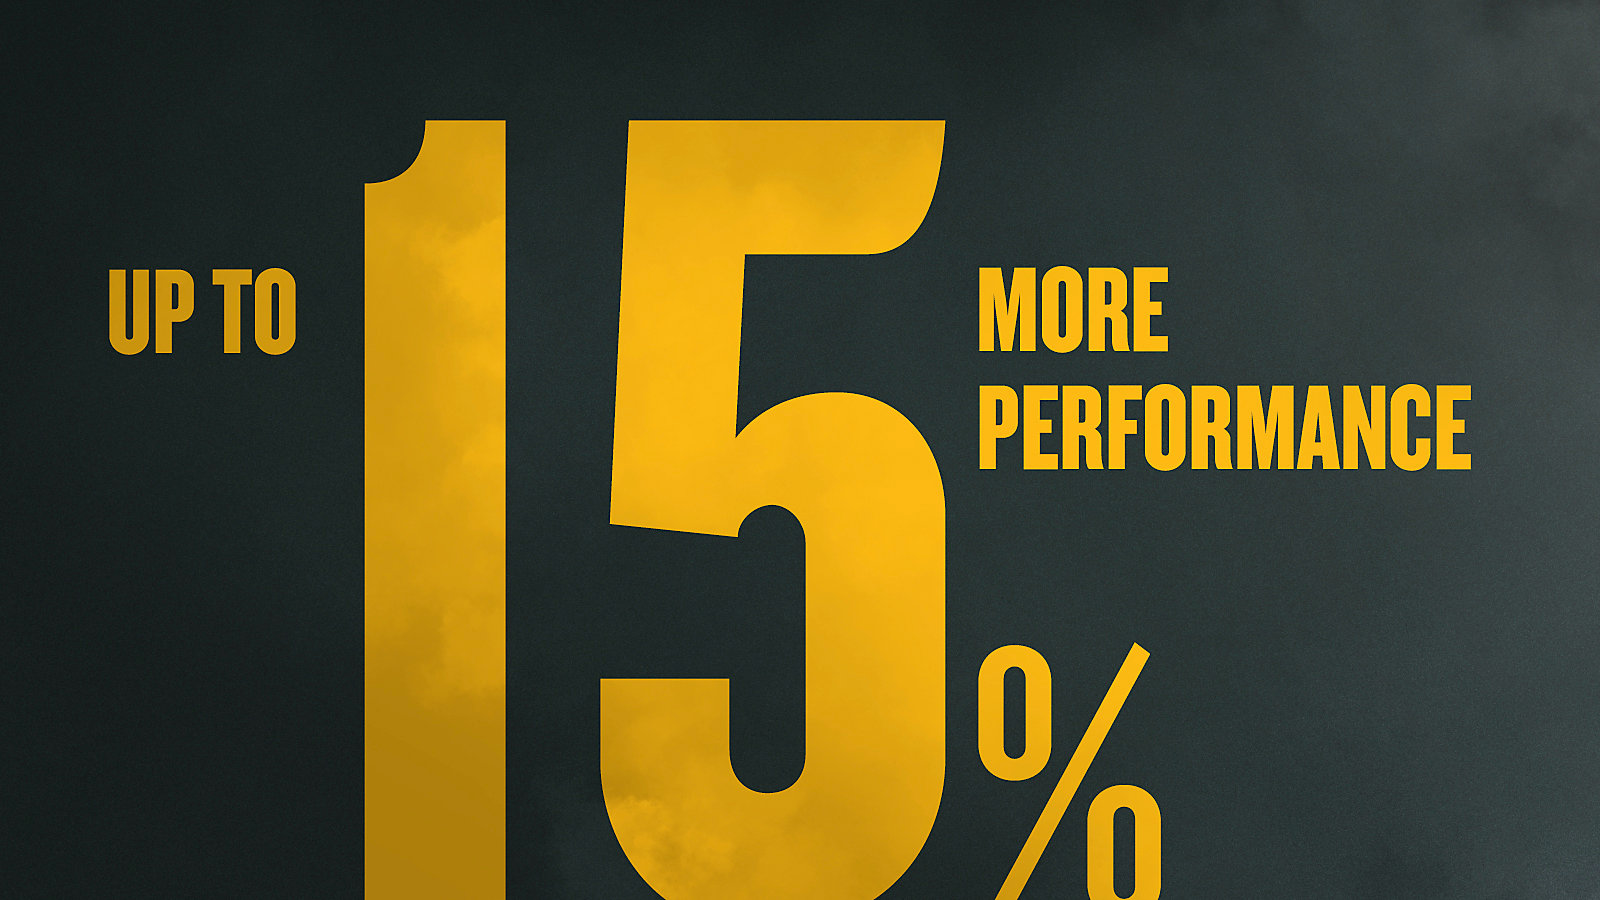 Up to 15% More Performance